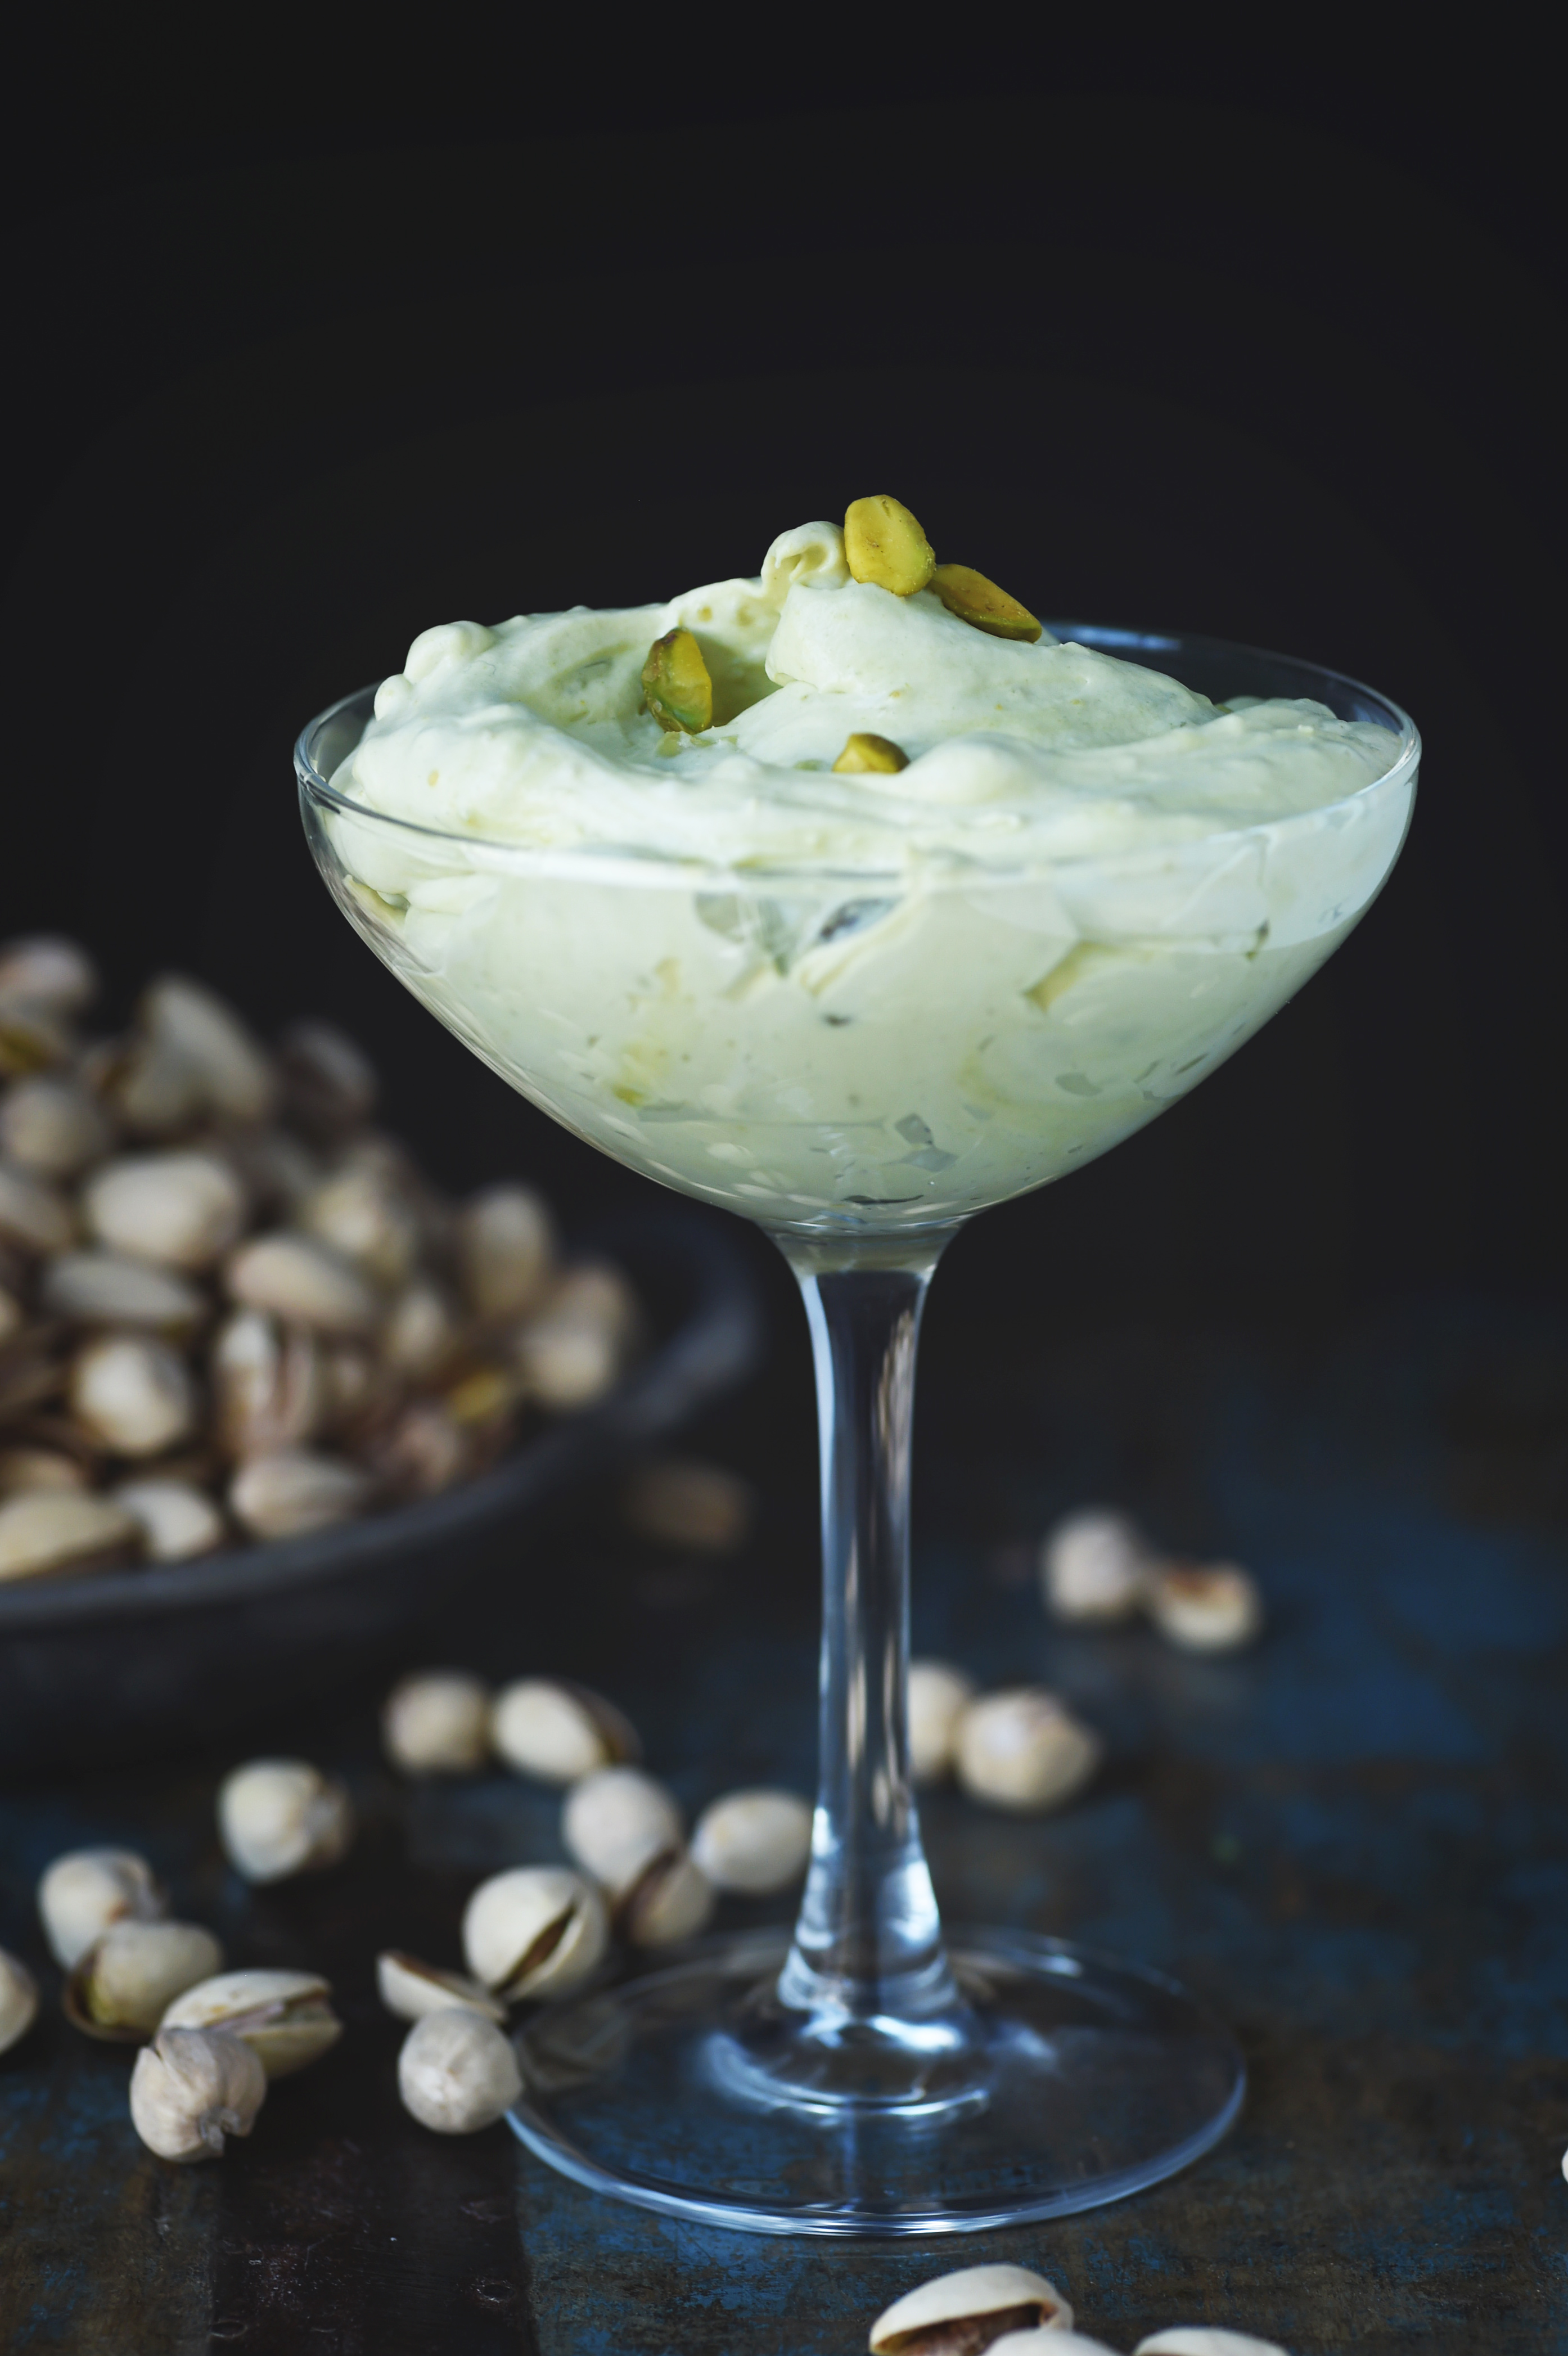 Low-Carb Pistachio Mousse Recipe served in a champagne glass with pistachios in the background.